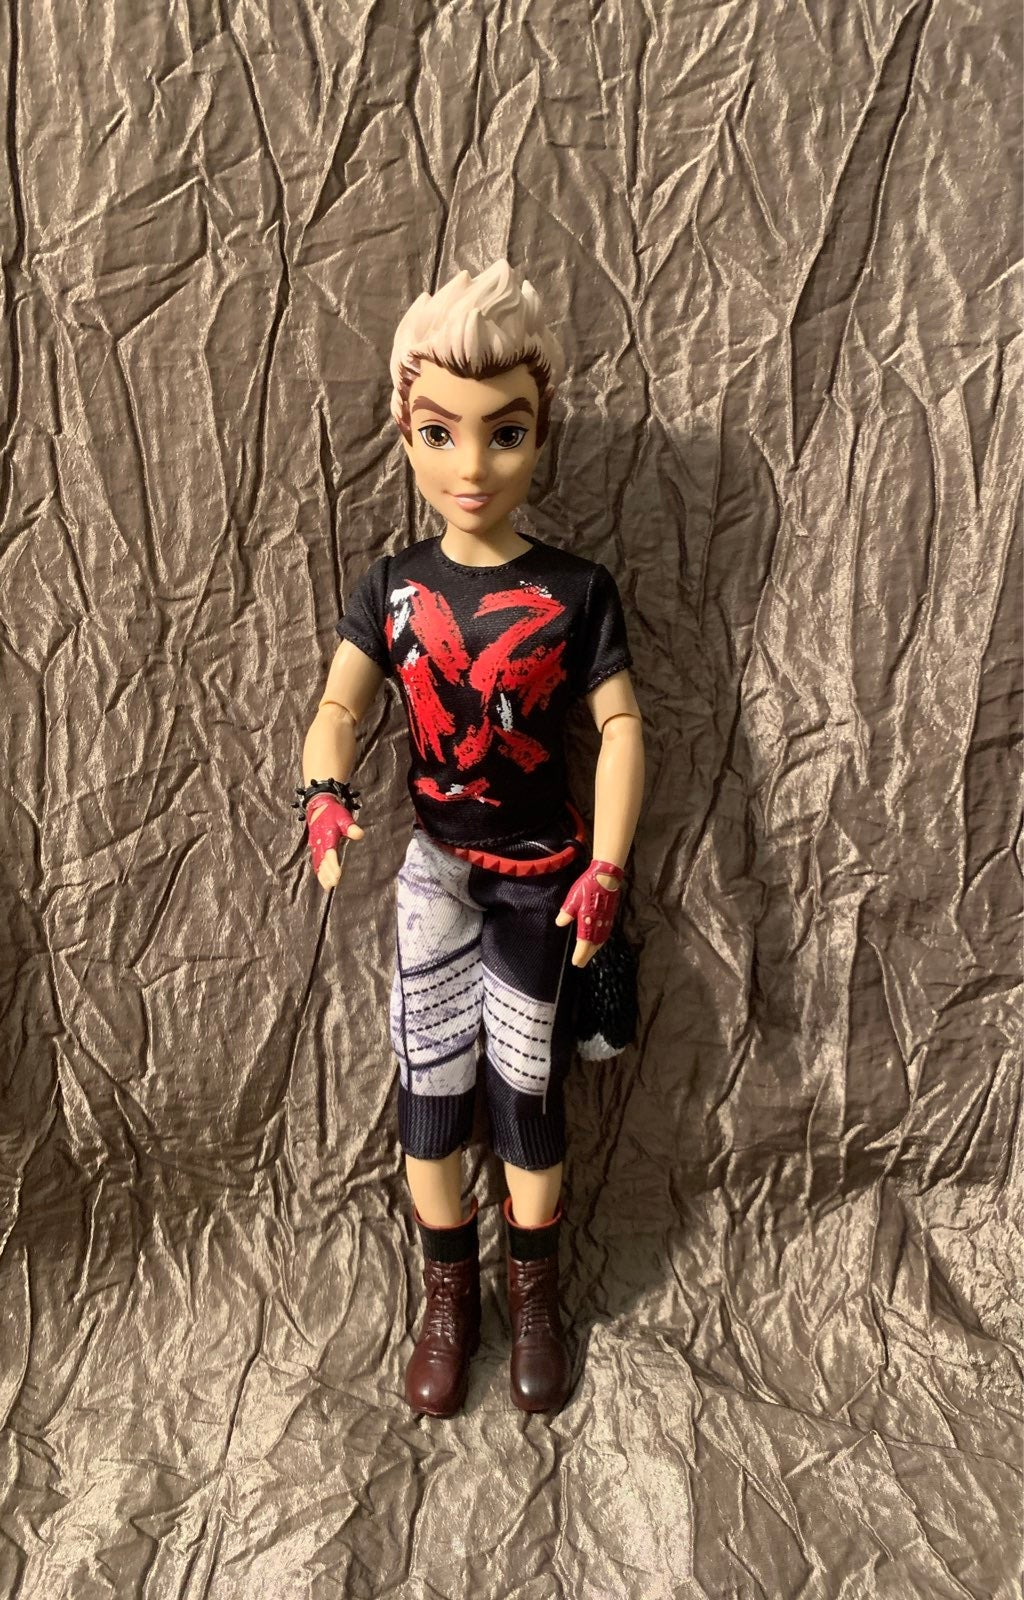 Disney descendants dolls Carlos